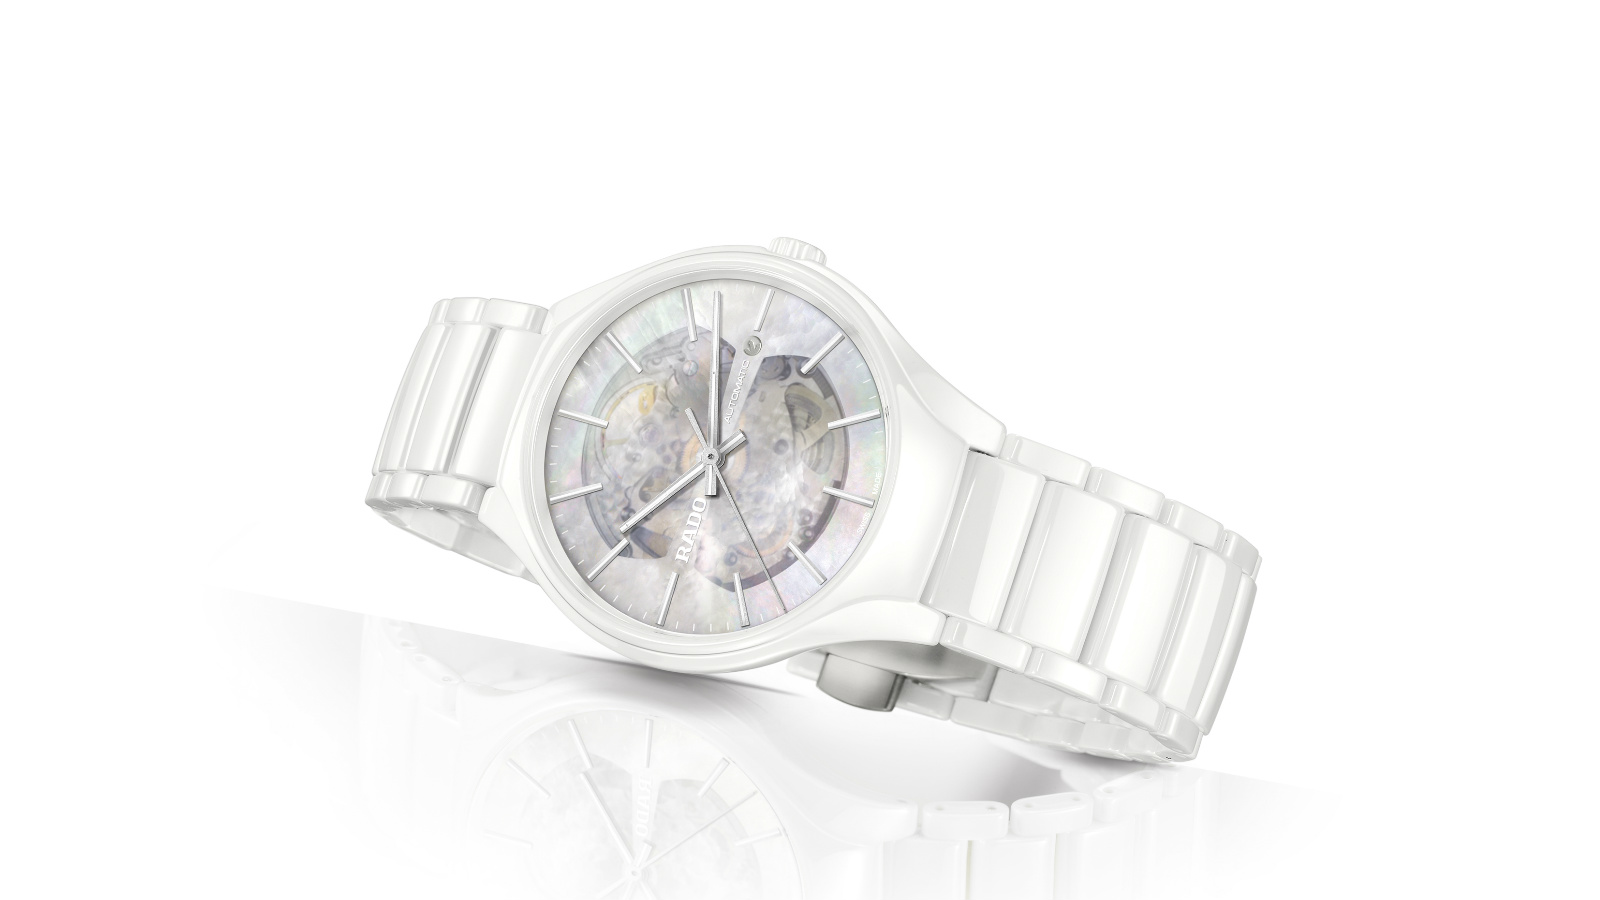 Rado_True Open Heart_White_734_0106_3_090_side_1600x900